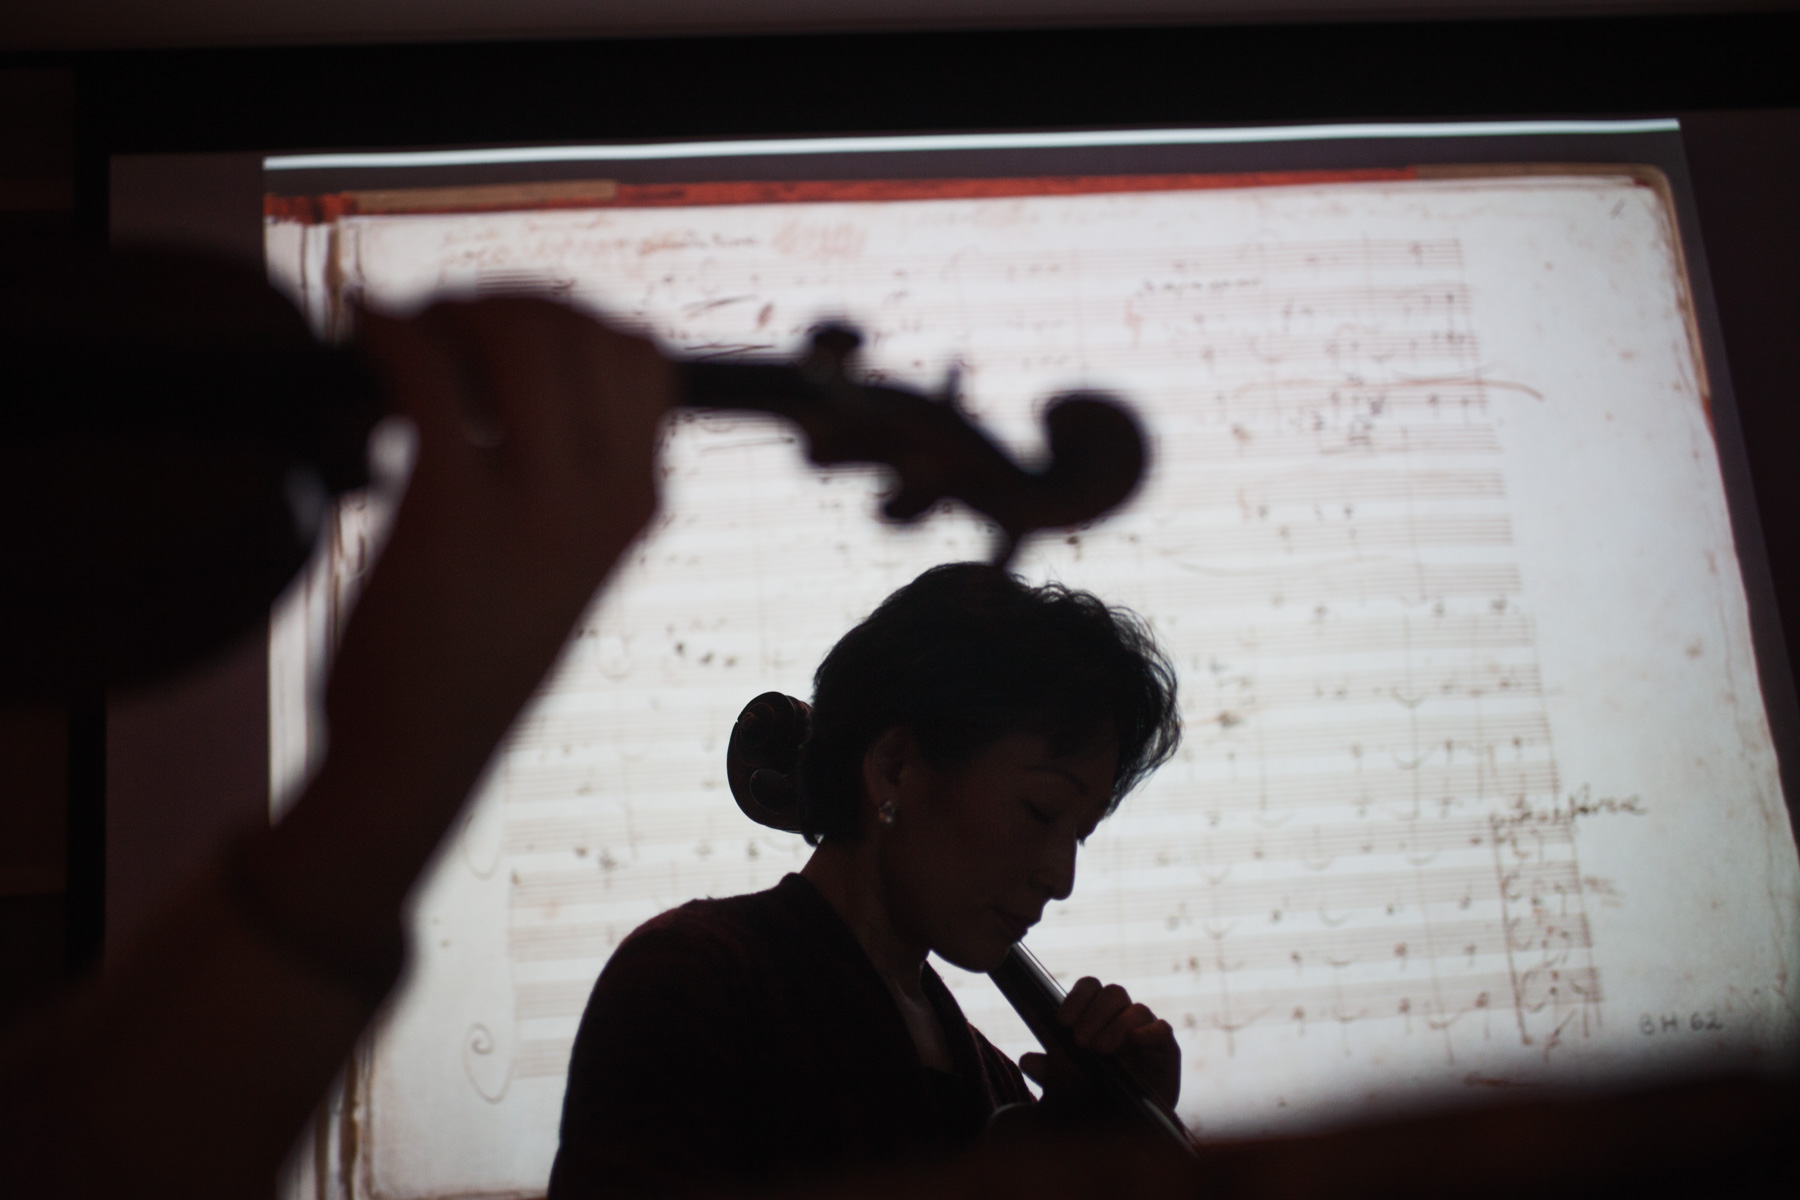 cello-music-rehearsal